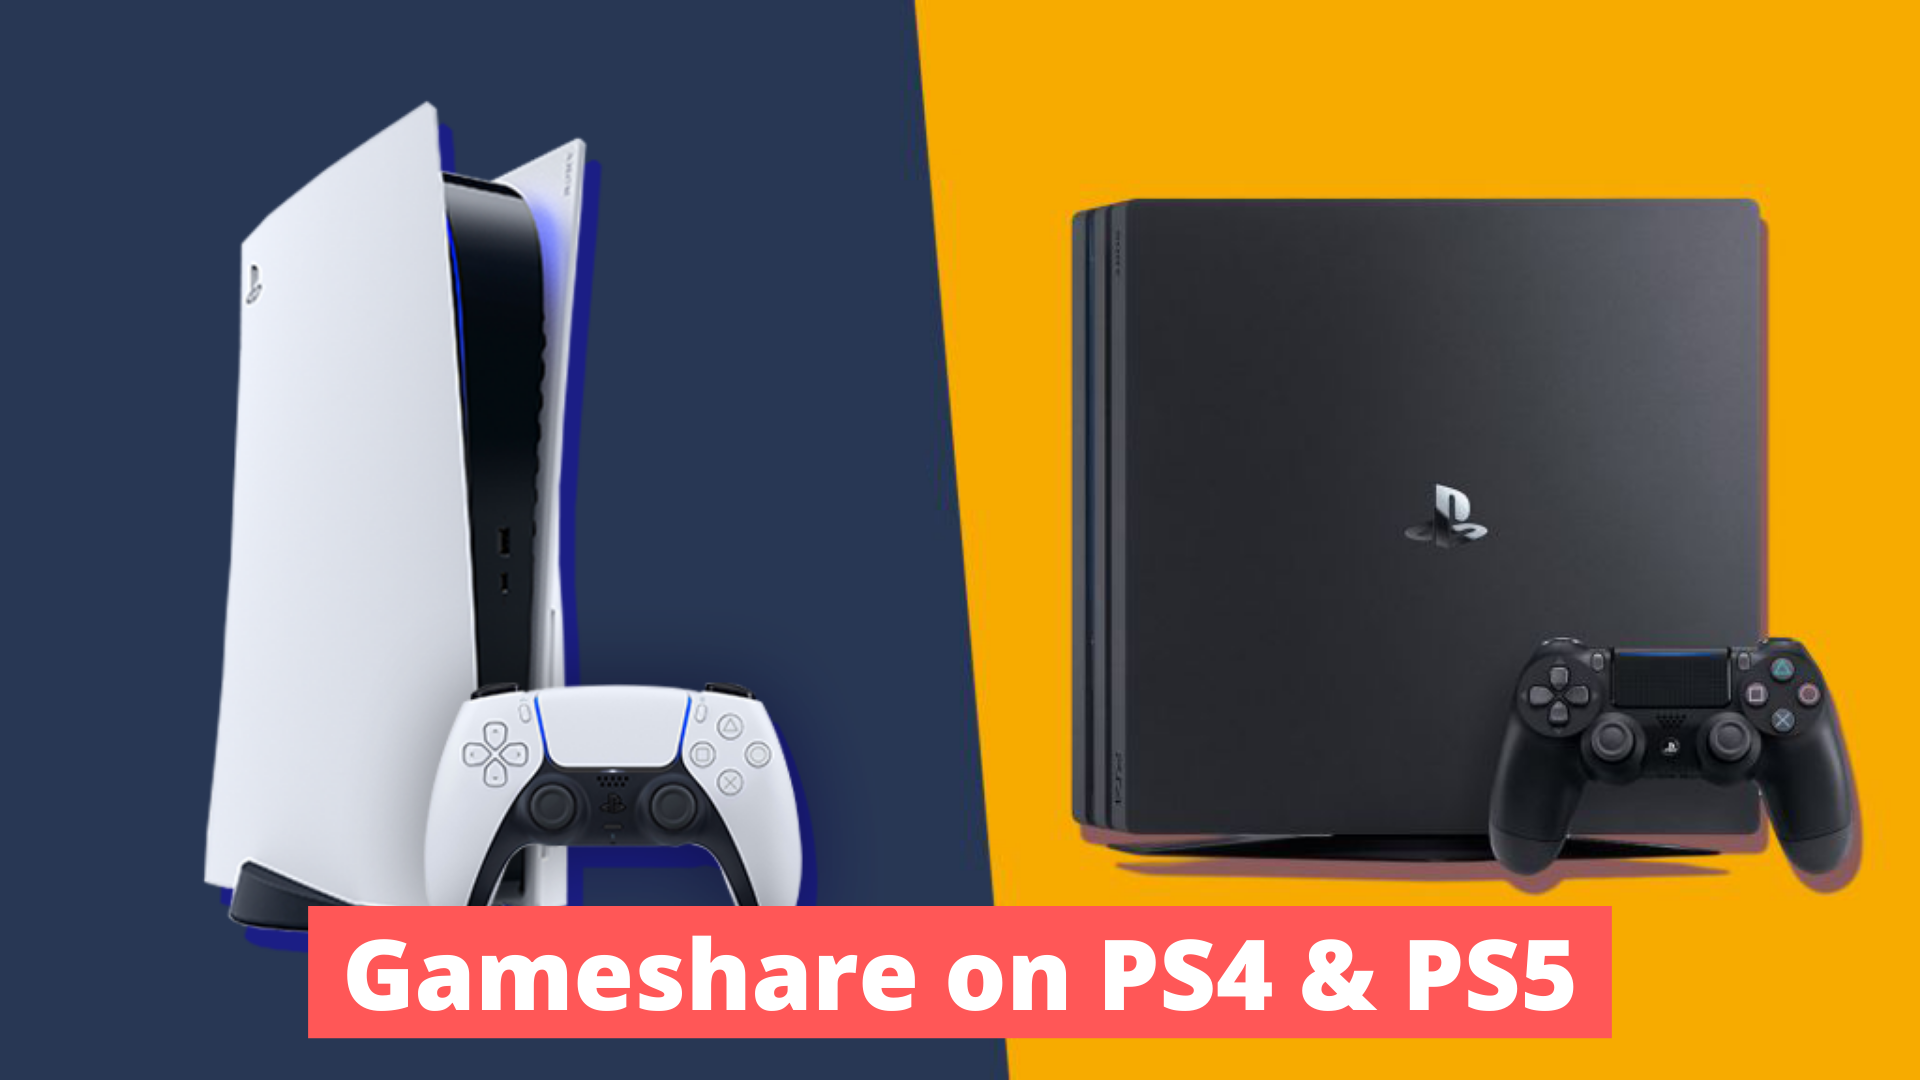 Gameshare on PS4 AND PS5